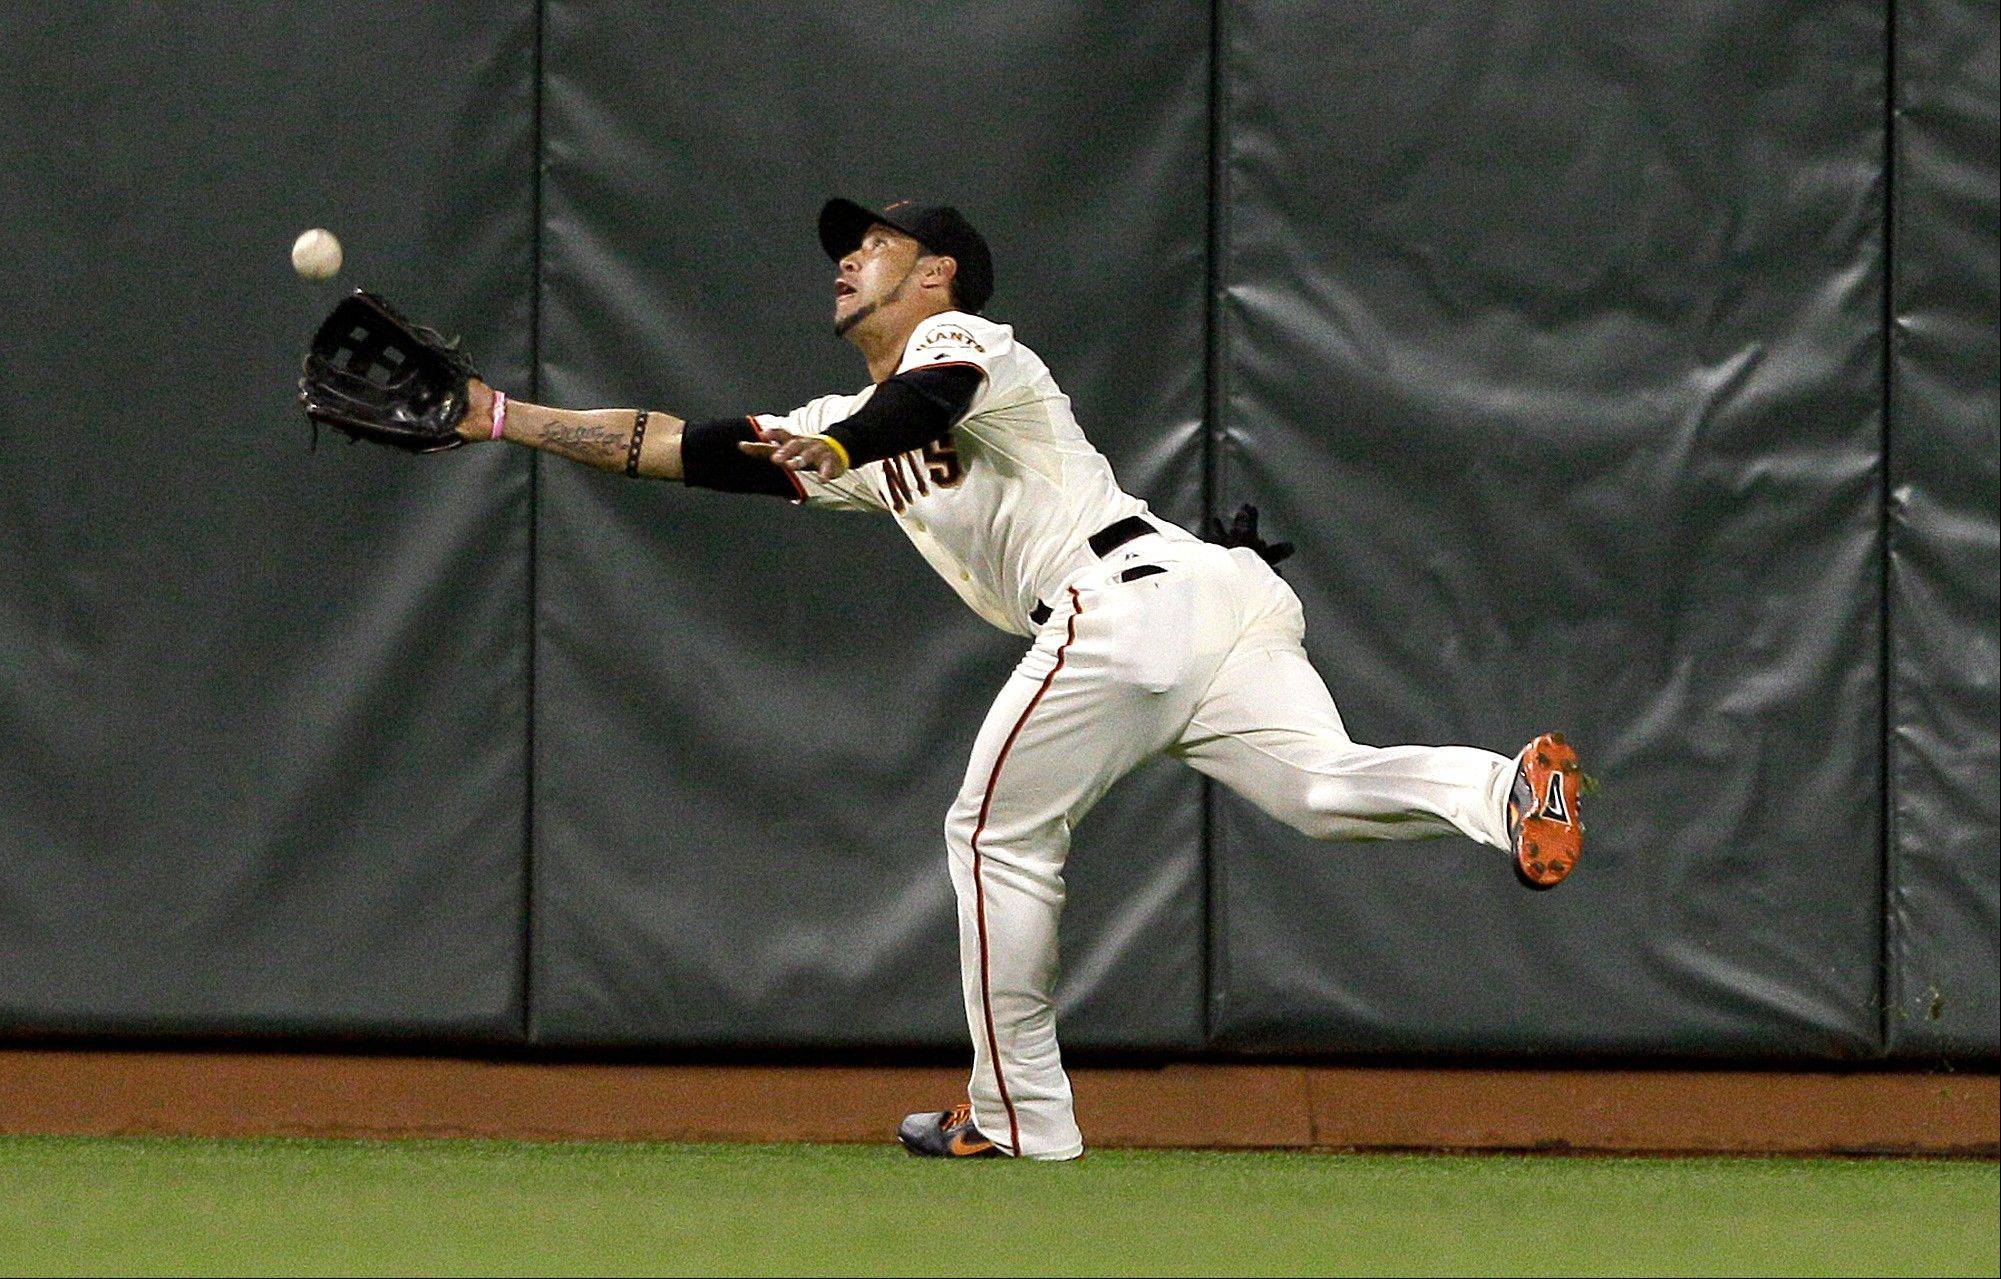 Giants center fielder Gregor Blanco catches a fly ball hit by Houston Astros' Jordan Schafer during the seventh inning Wednesday to help preserve pitcher Matt Cain's perfect game.